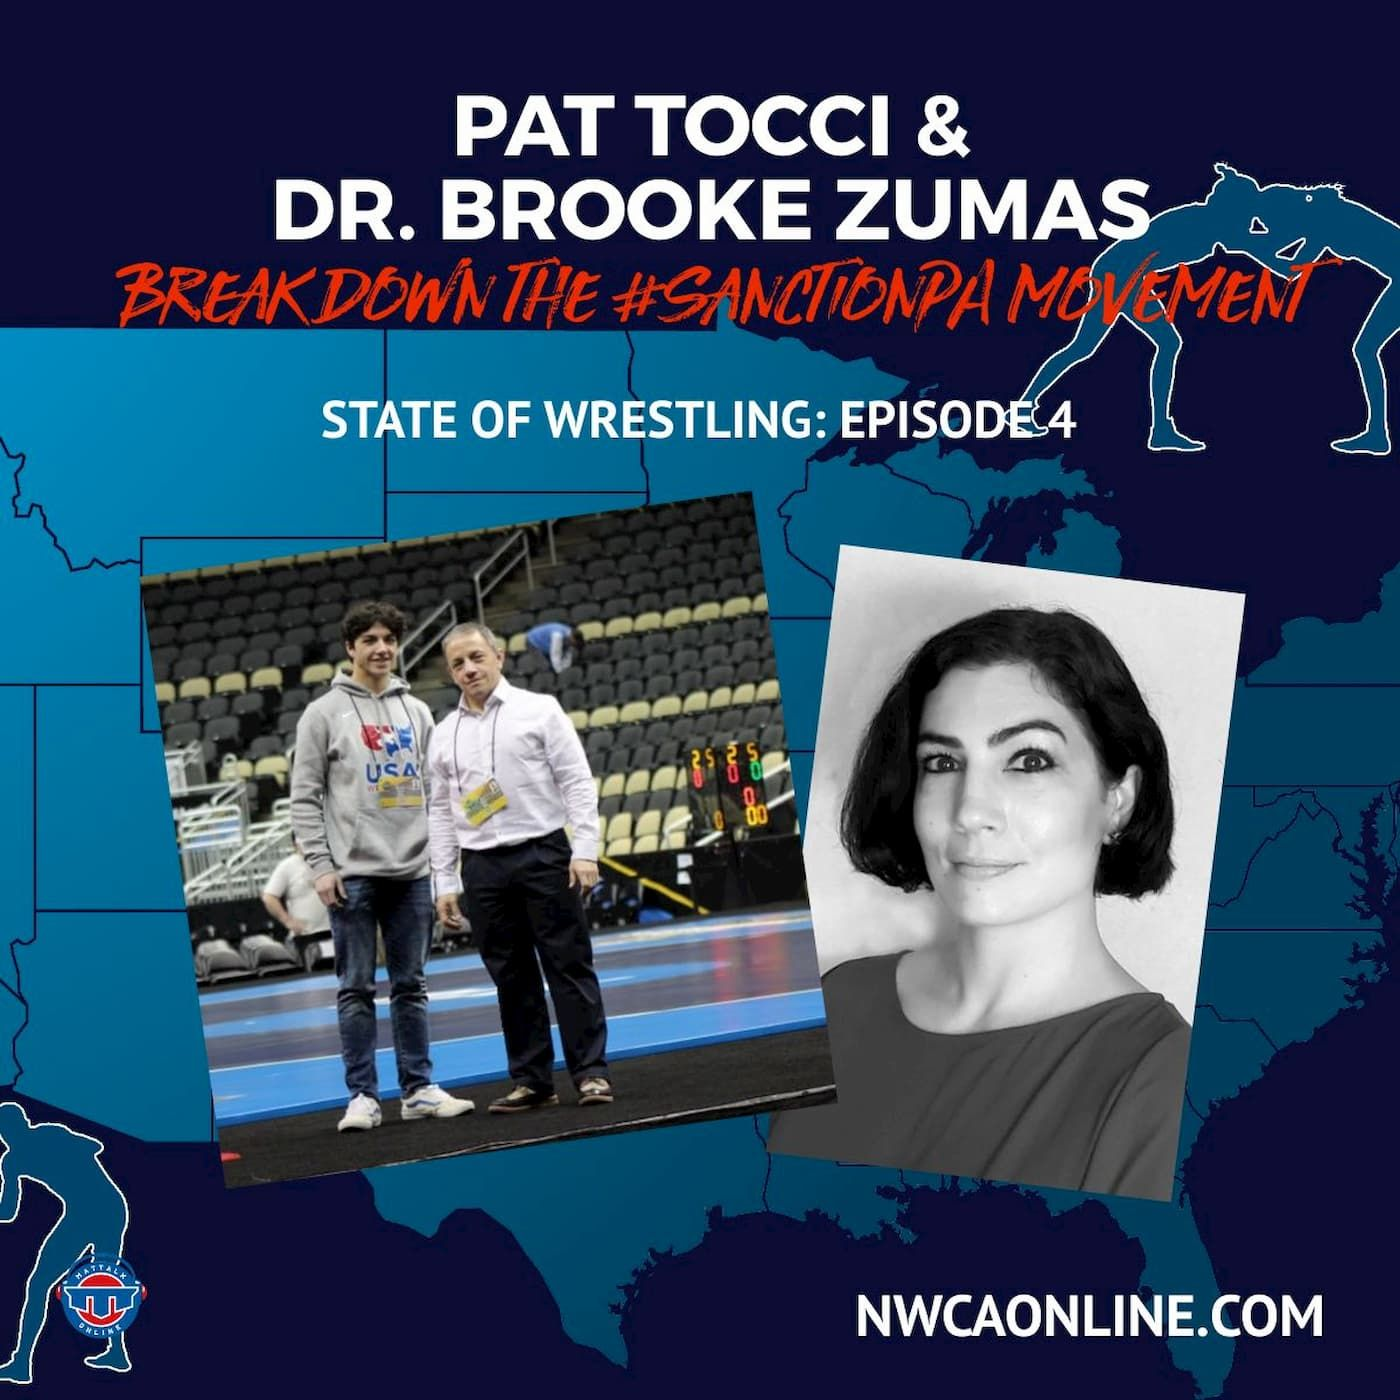 The #SanctionPA movement with Dr. Brooke Zumas and Pat Tocci